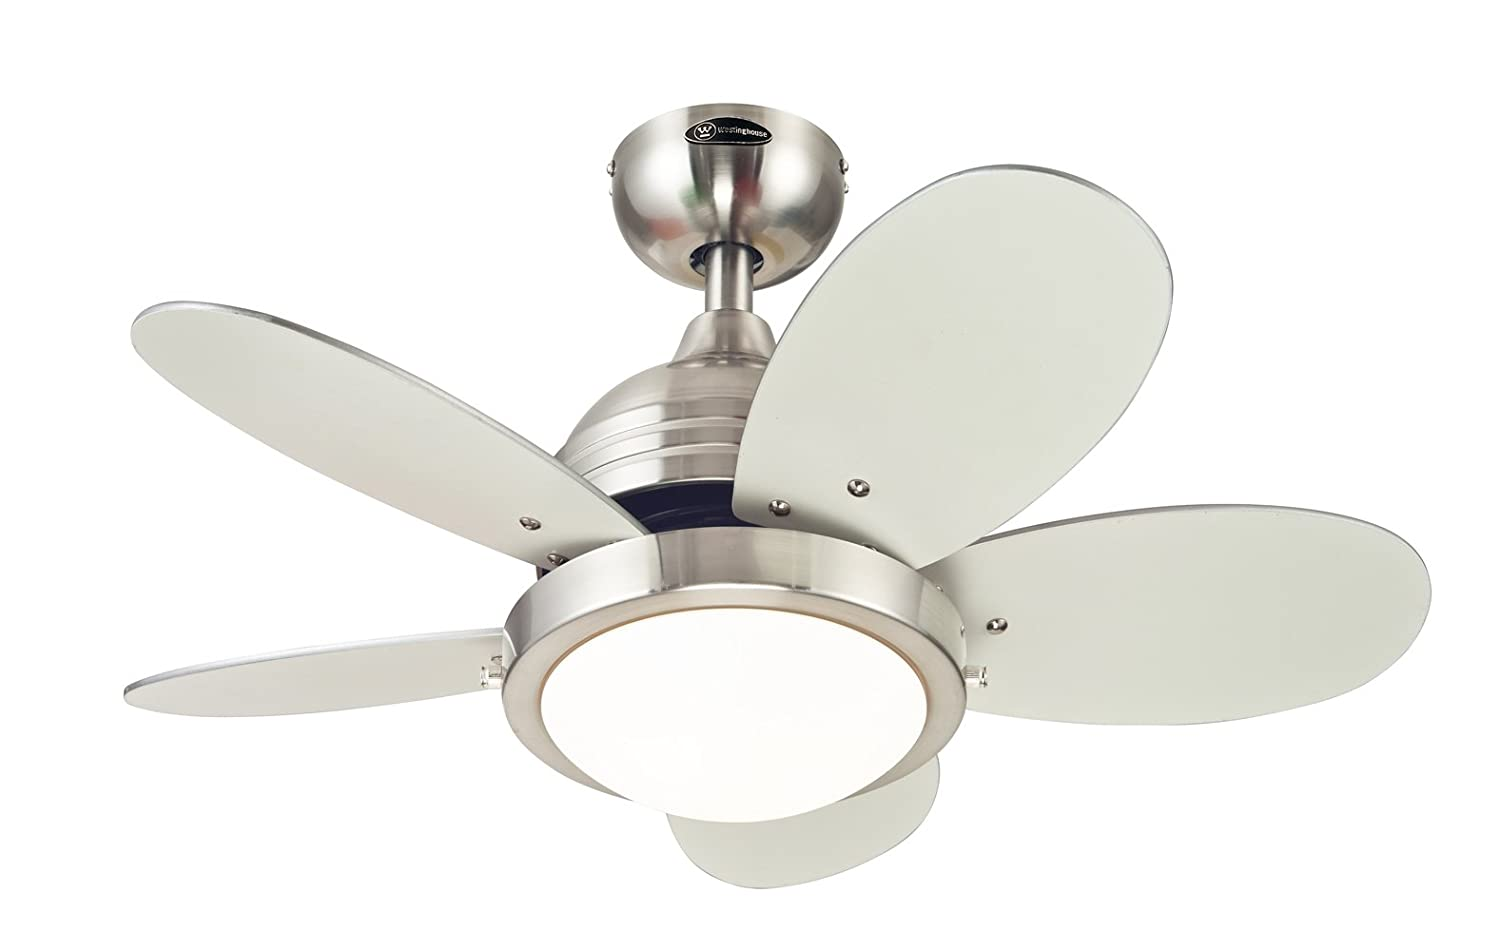 Roundabout Inch Brushed Nickel Indoor Ceiling Fan Light - White kitchen ceiling fan with light